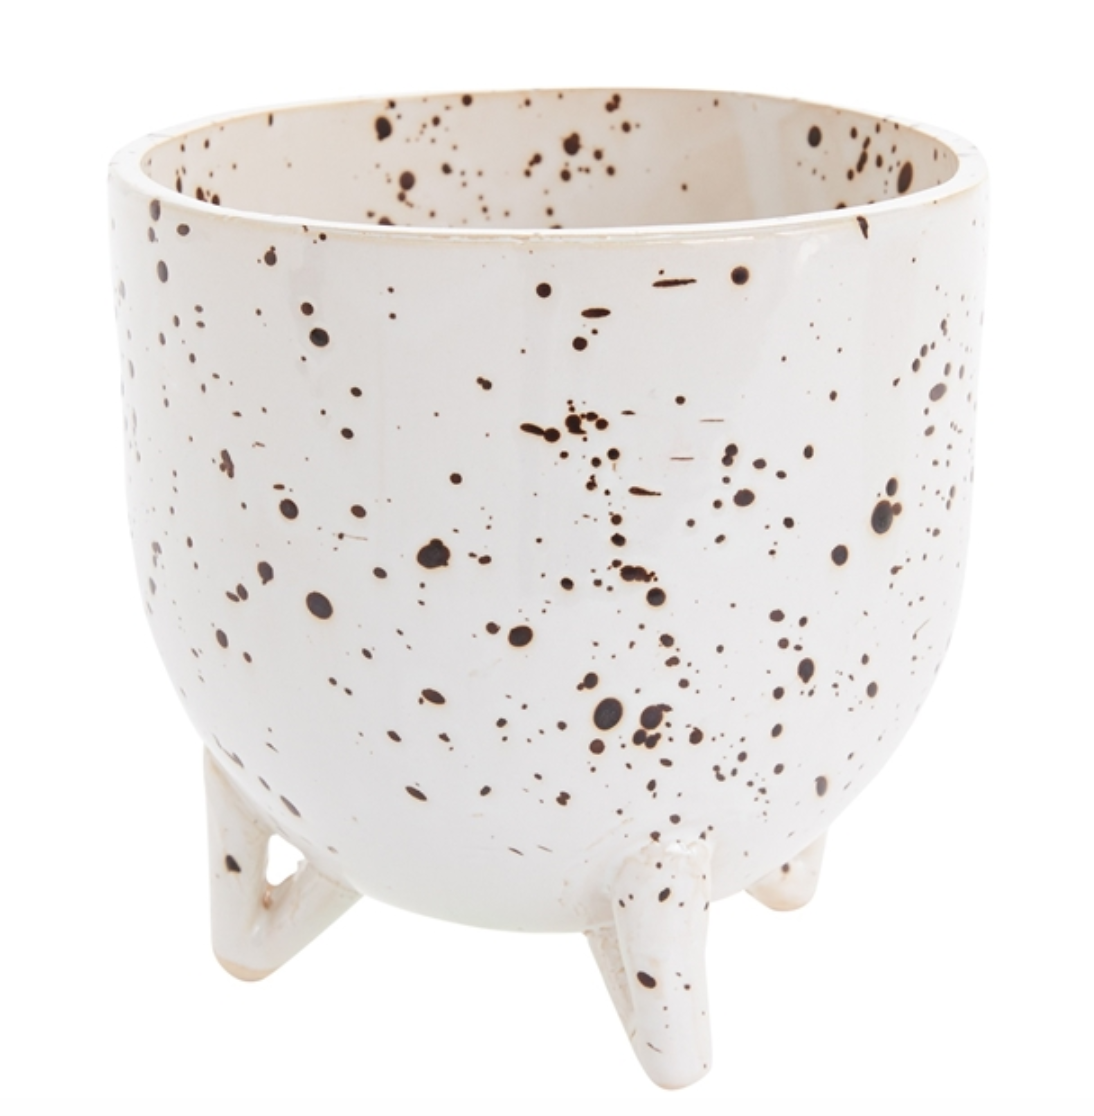 Accent Decor Reid Pot 6.75x6.5""